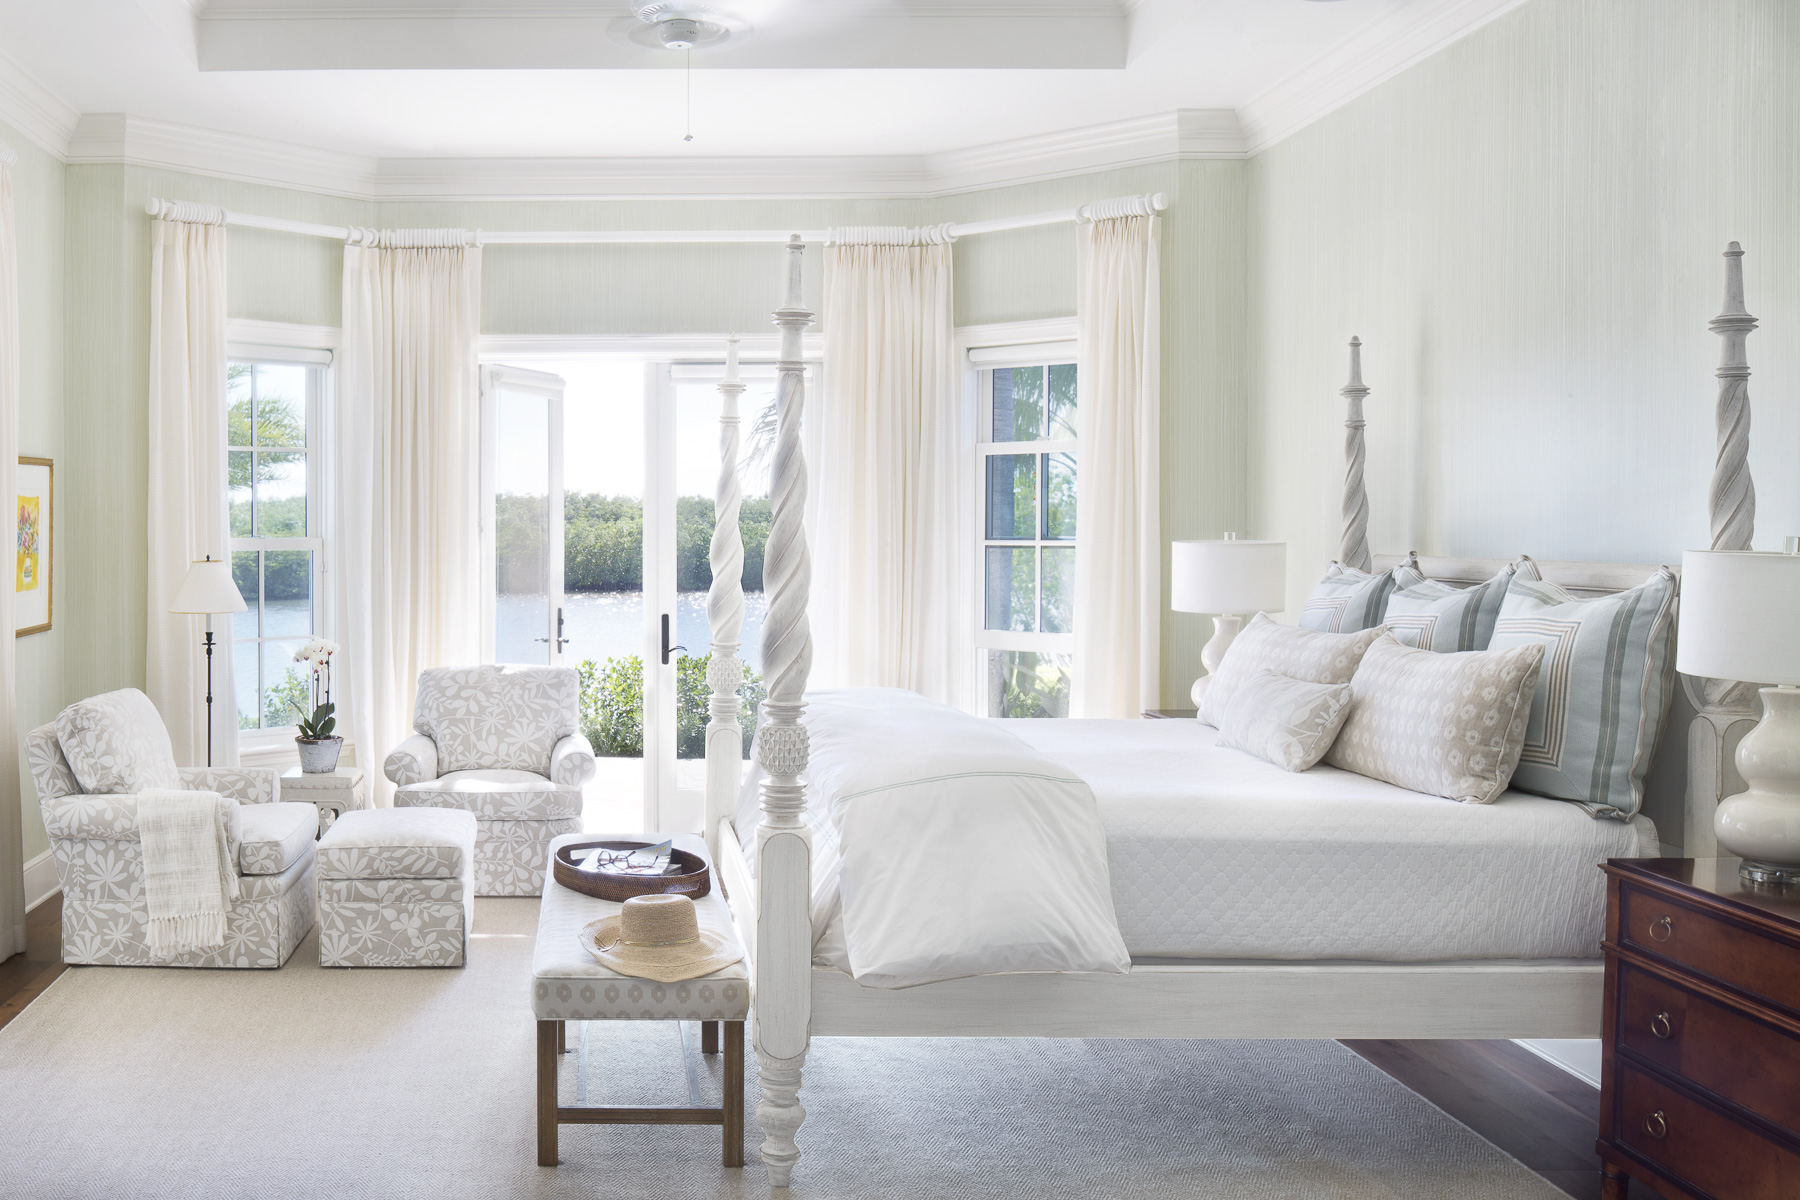 Waterfront master bedroom suite by Jill Shevlin Design